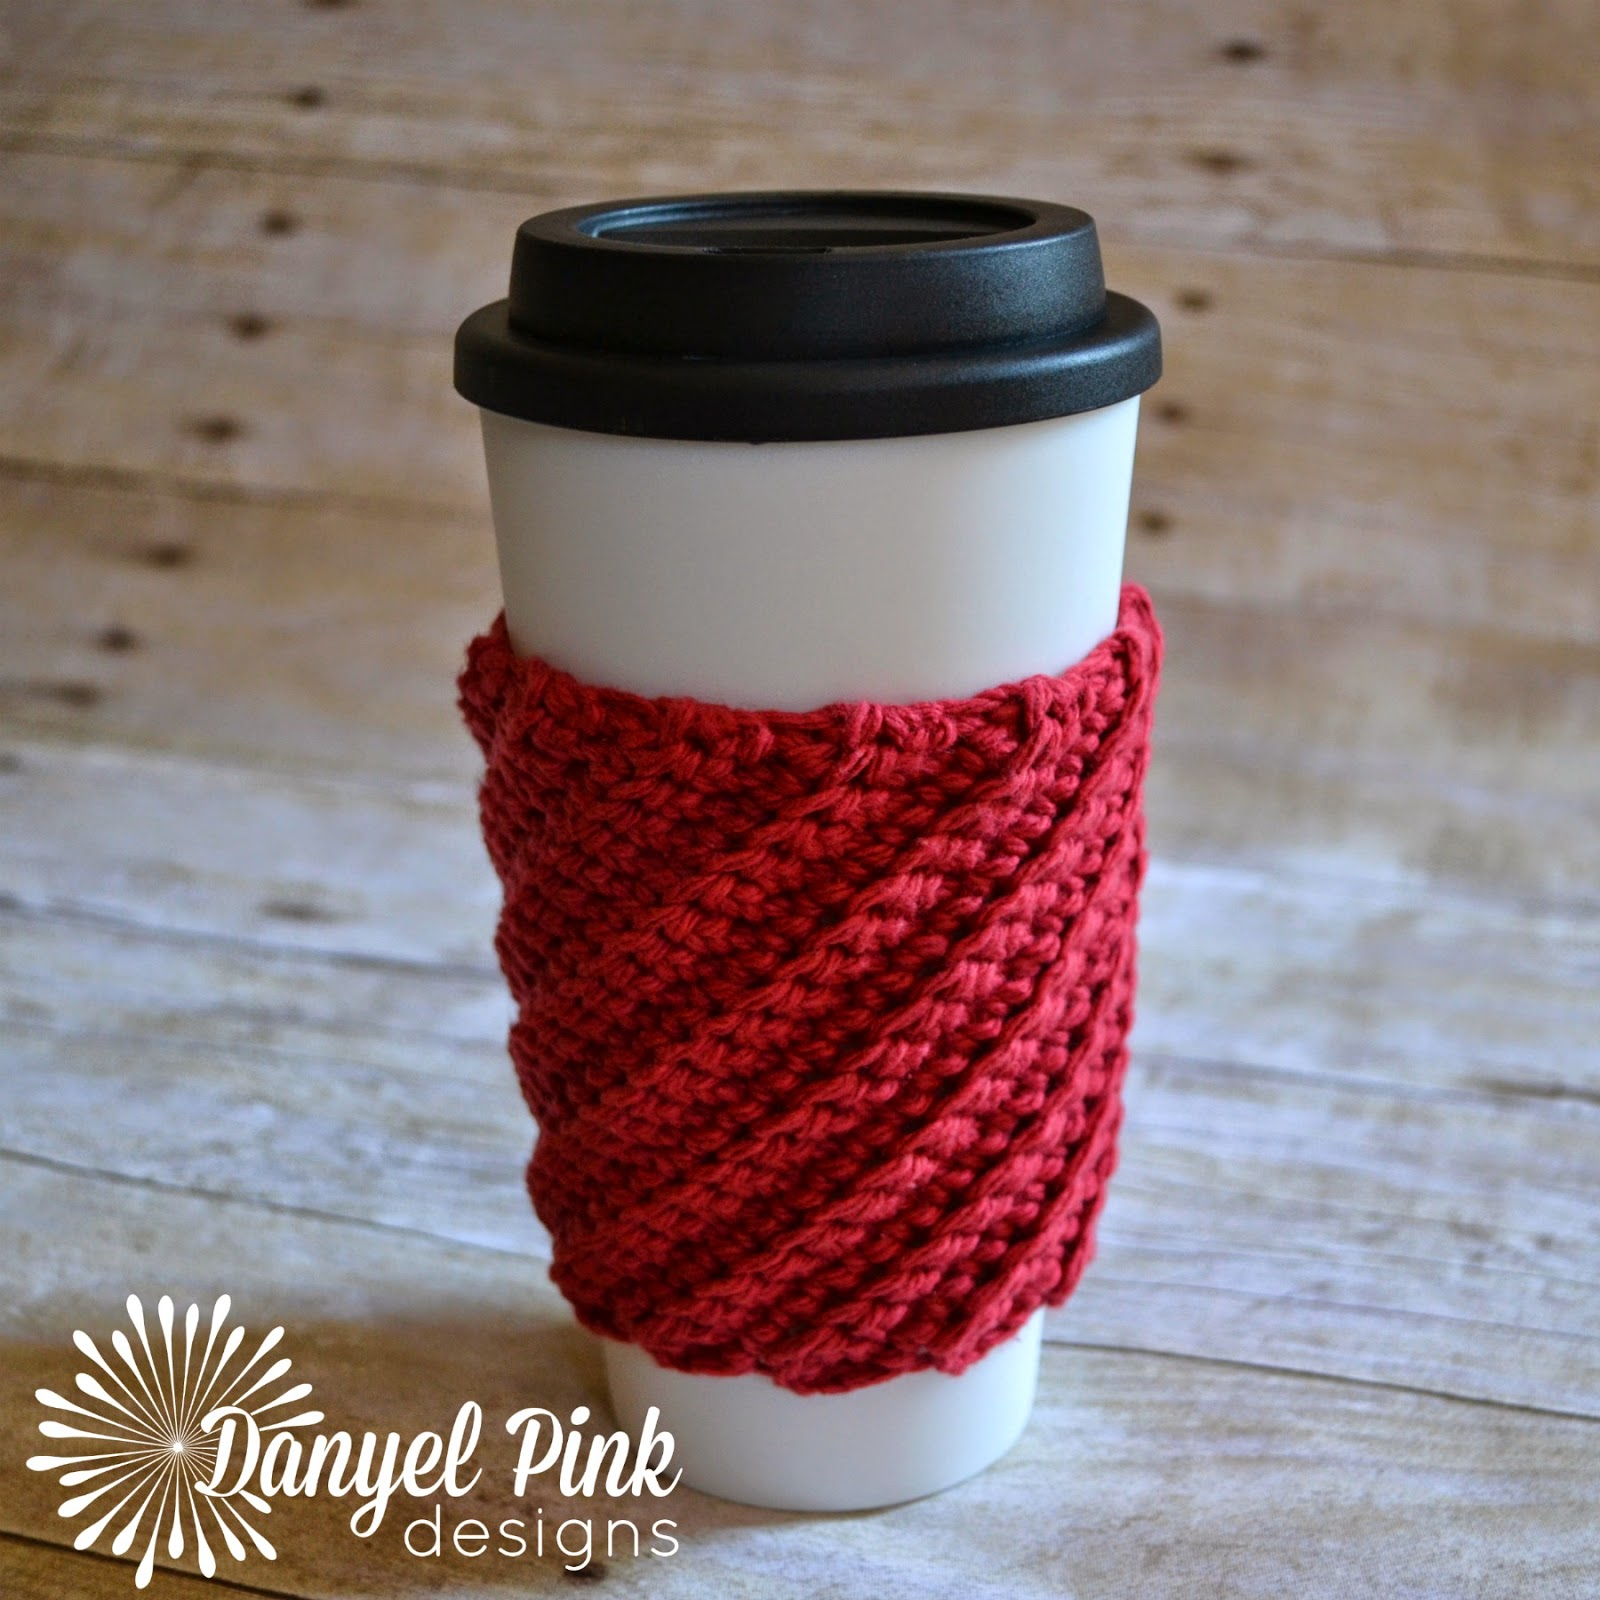 Danyel Pink Designs: CROCHET PATTERN - Crooked Coffee Cozy